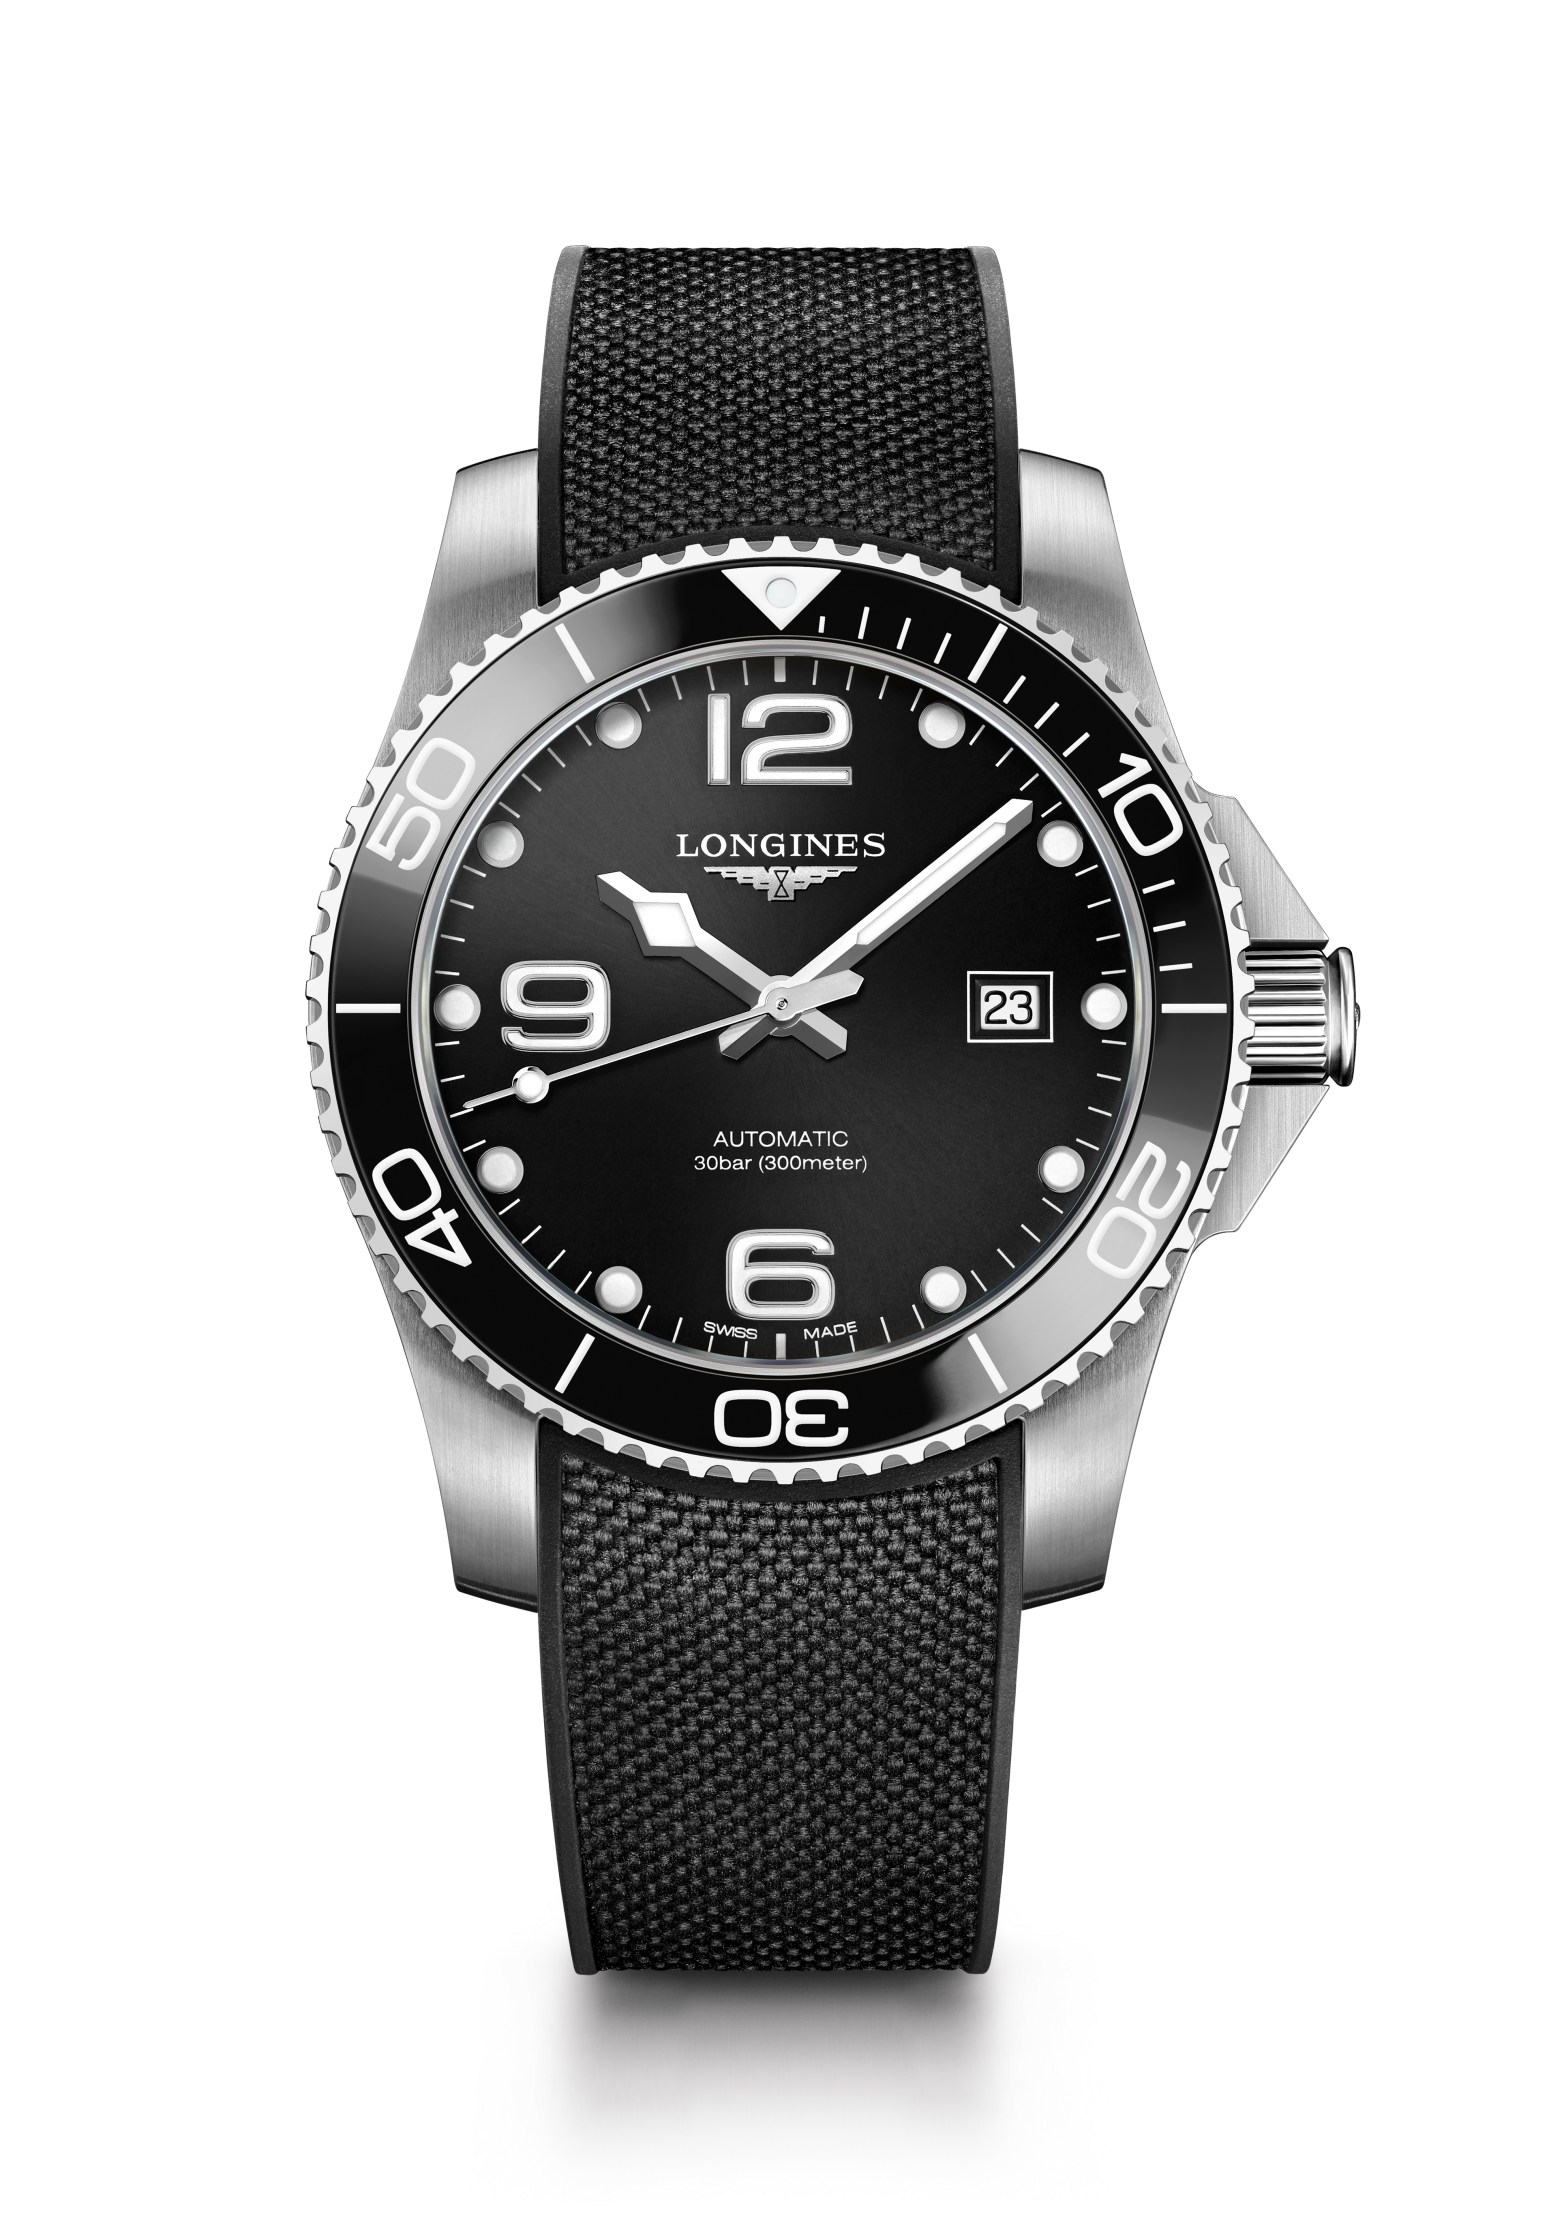 Baselworld 2018: Longines HydroConquest Dive Watch With